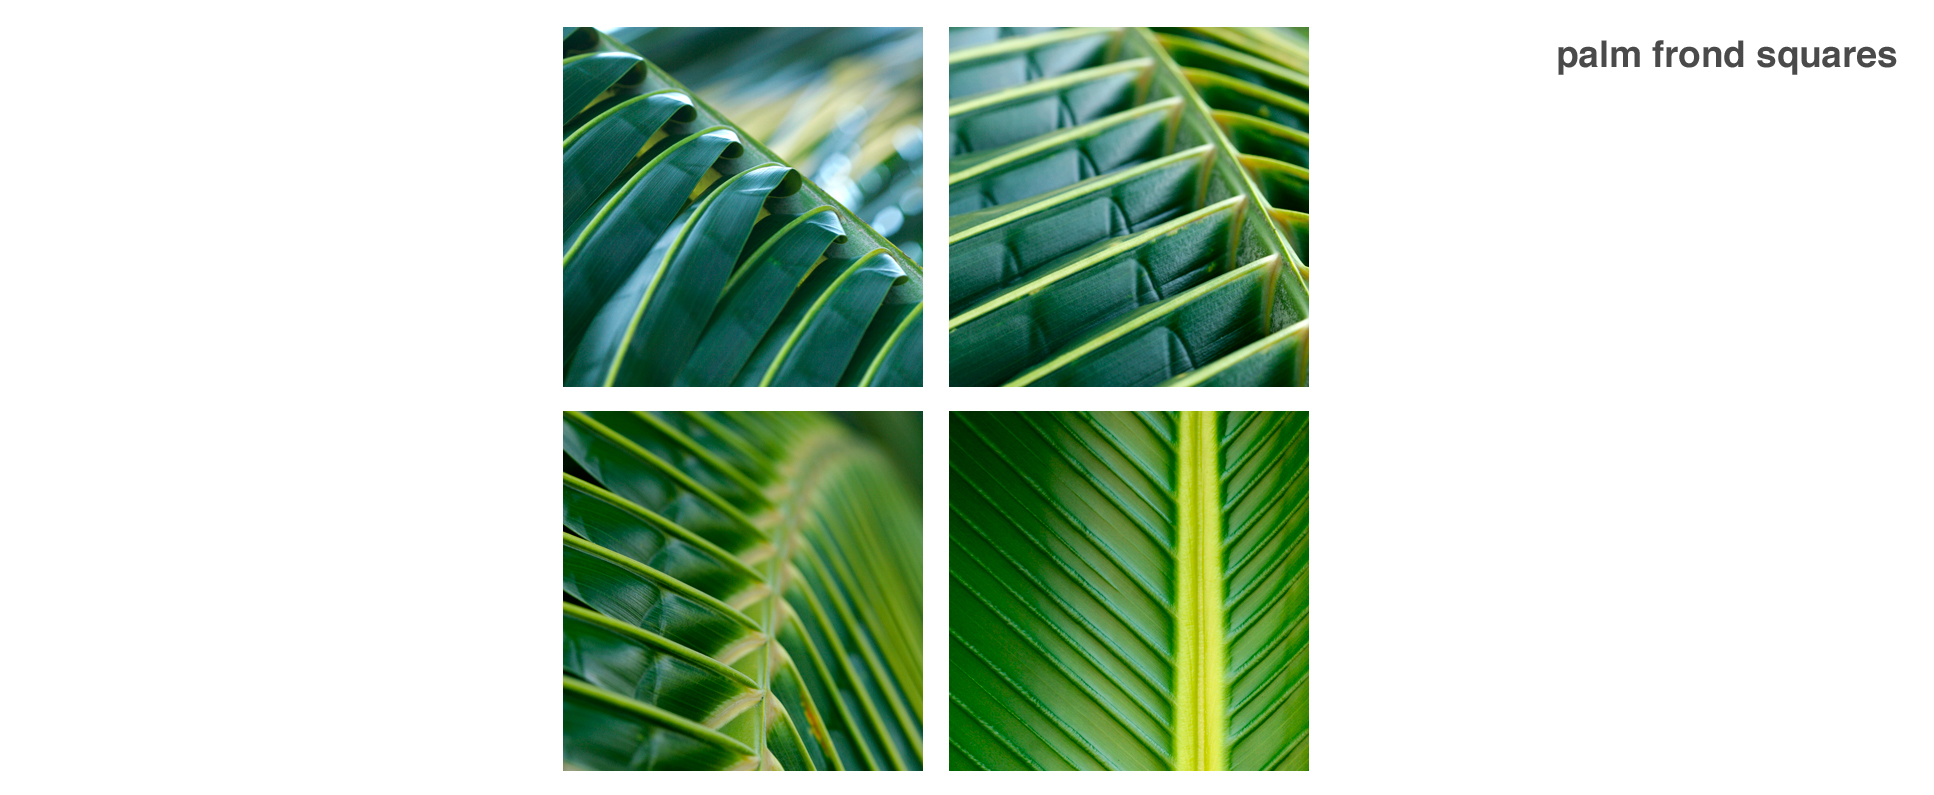 palm fronds Series Wall Decor Macro Photography Matted & Giclée Canvas Prints